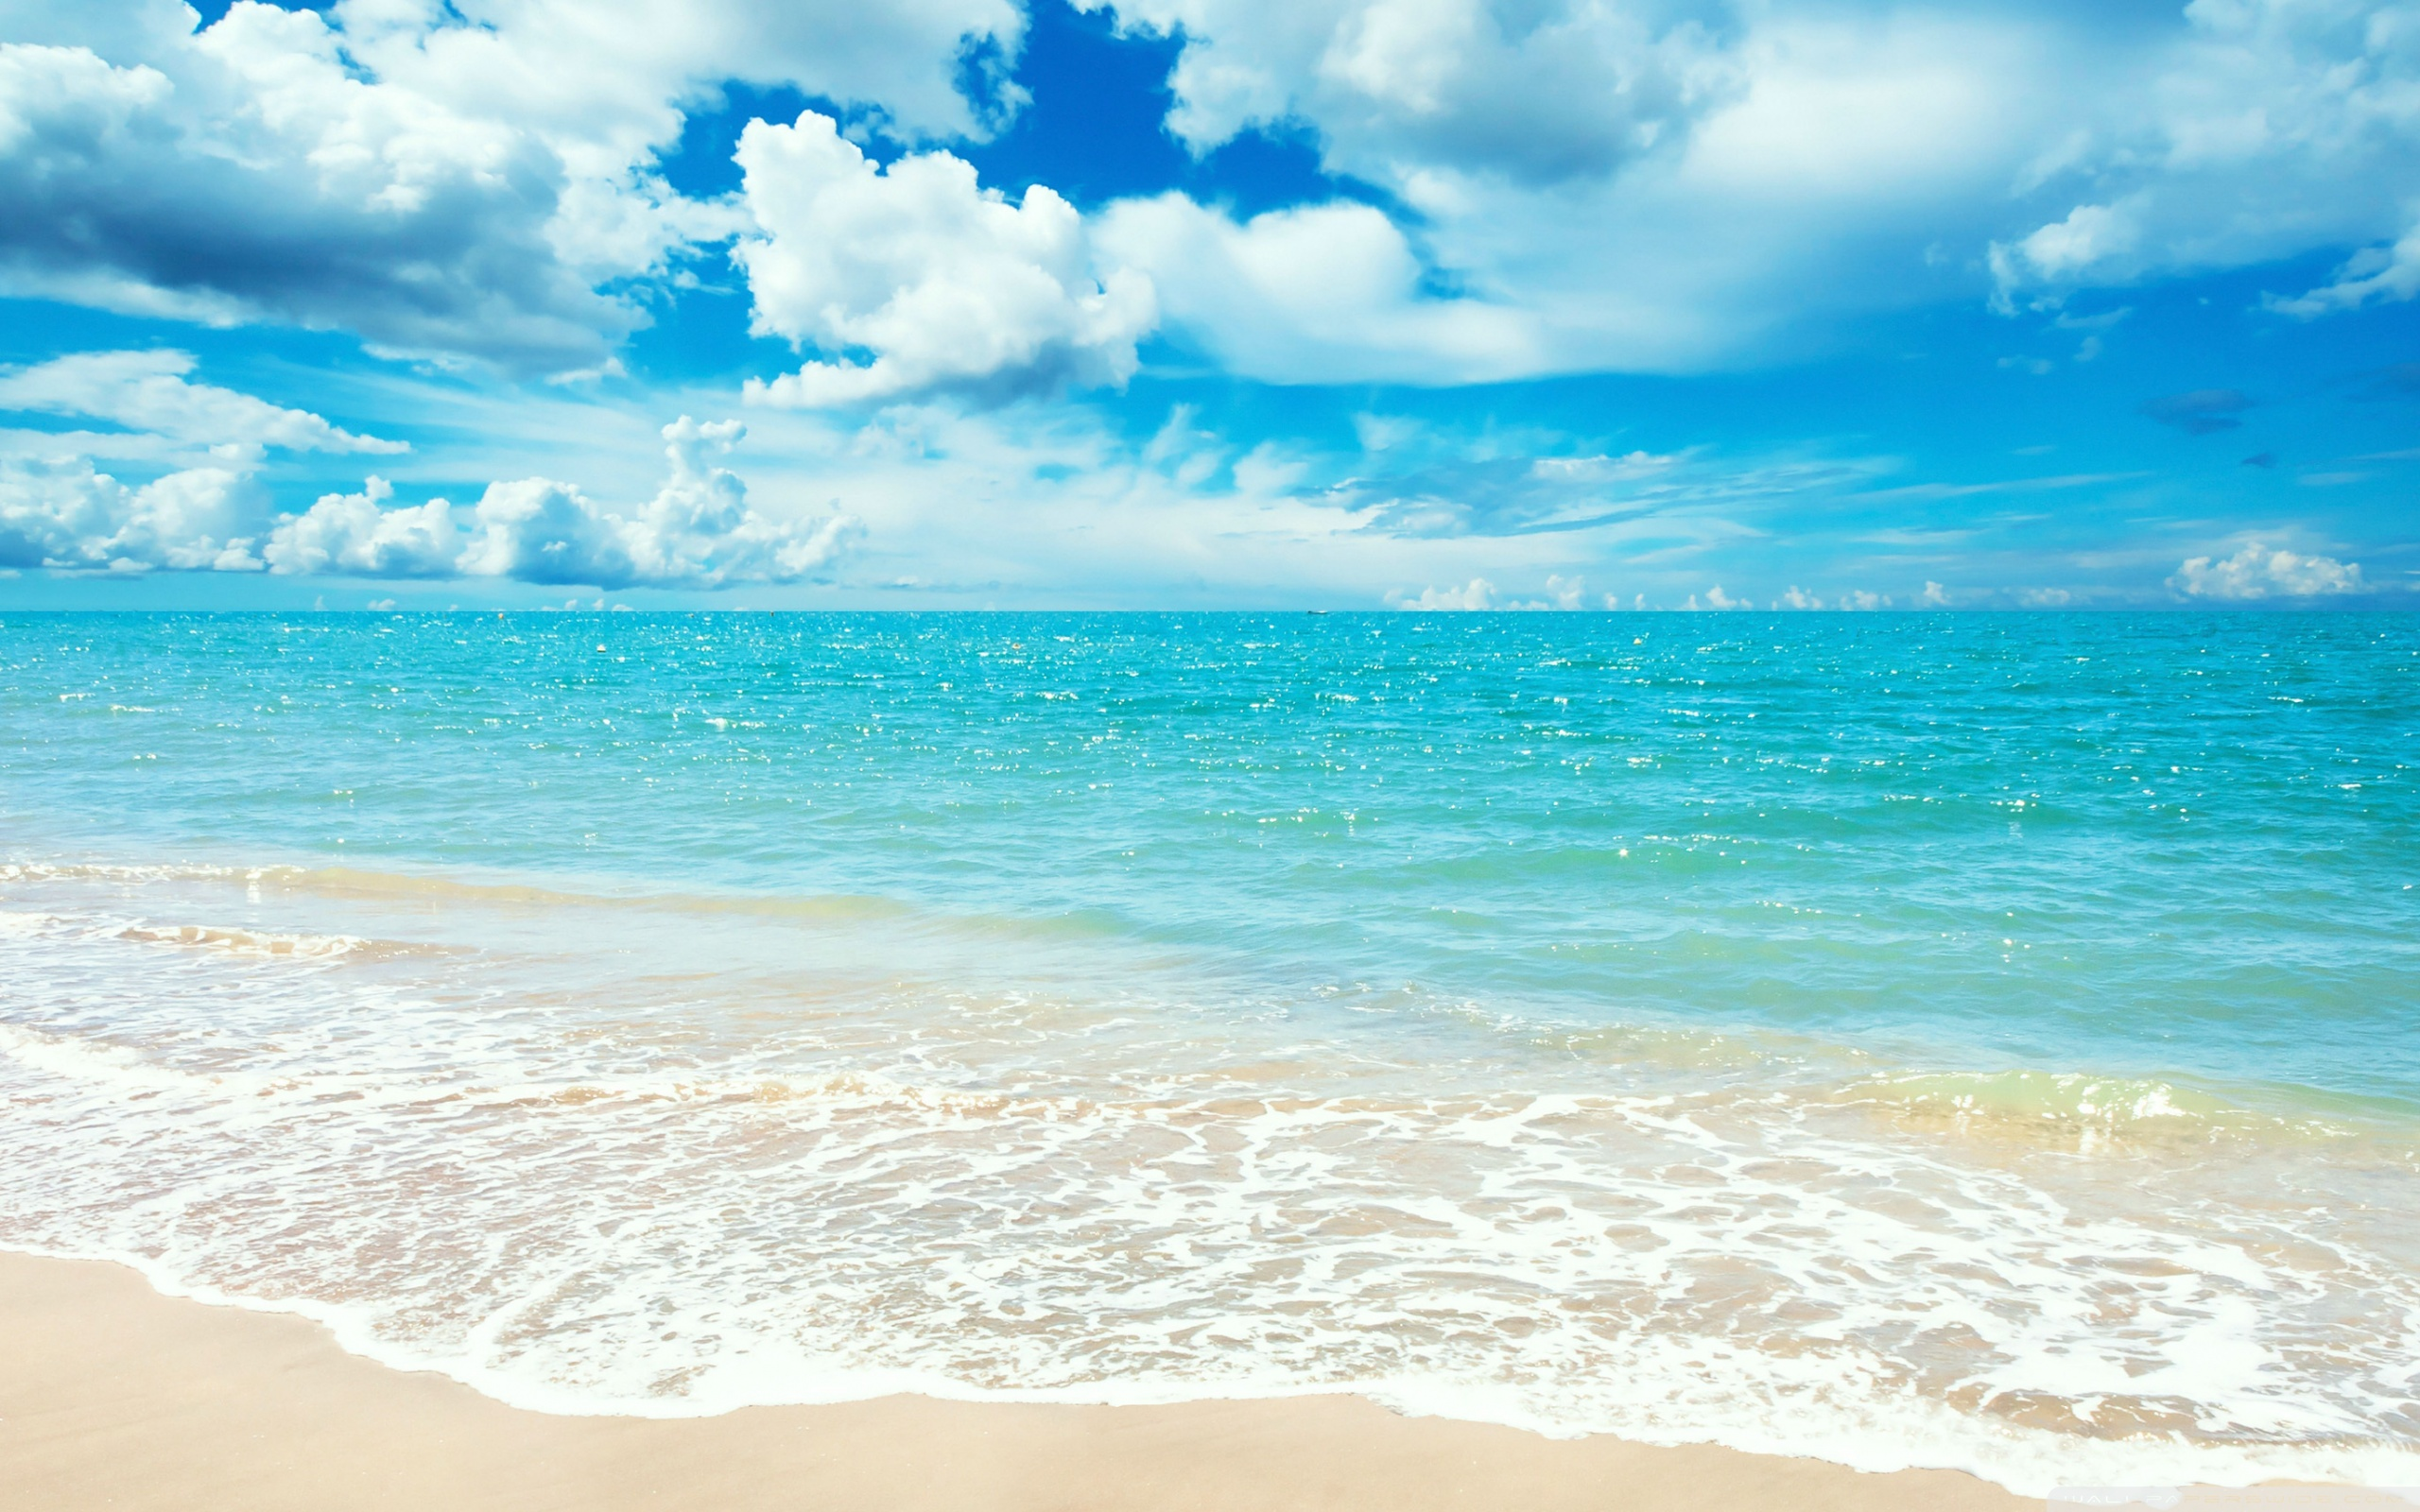 Beach HD desktop wallpaper